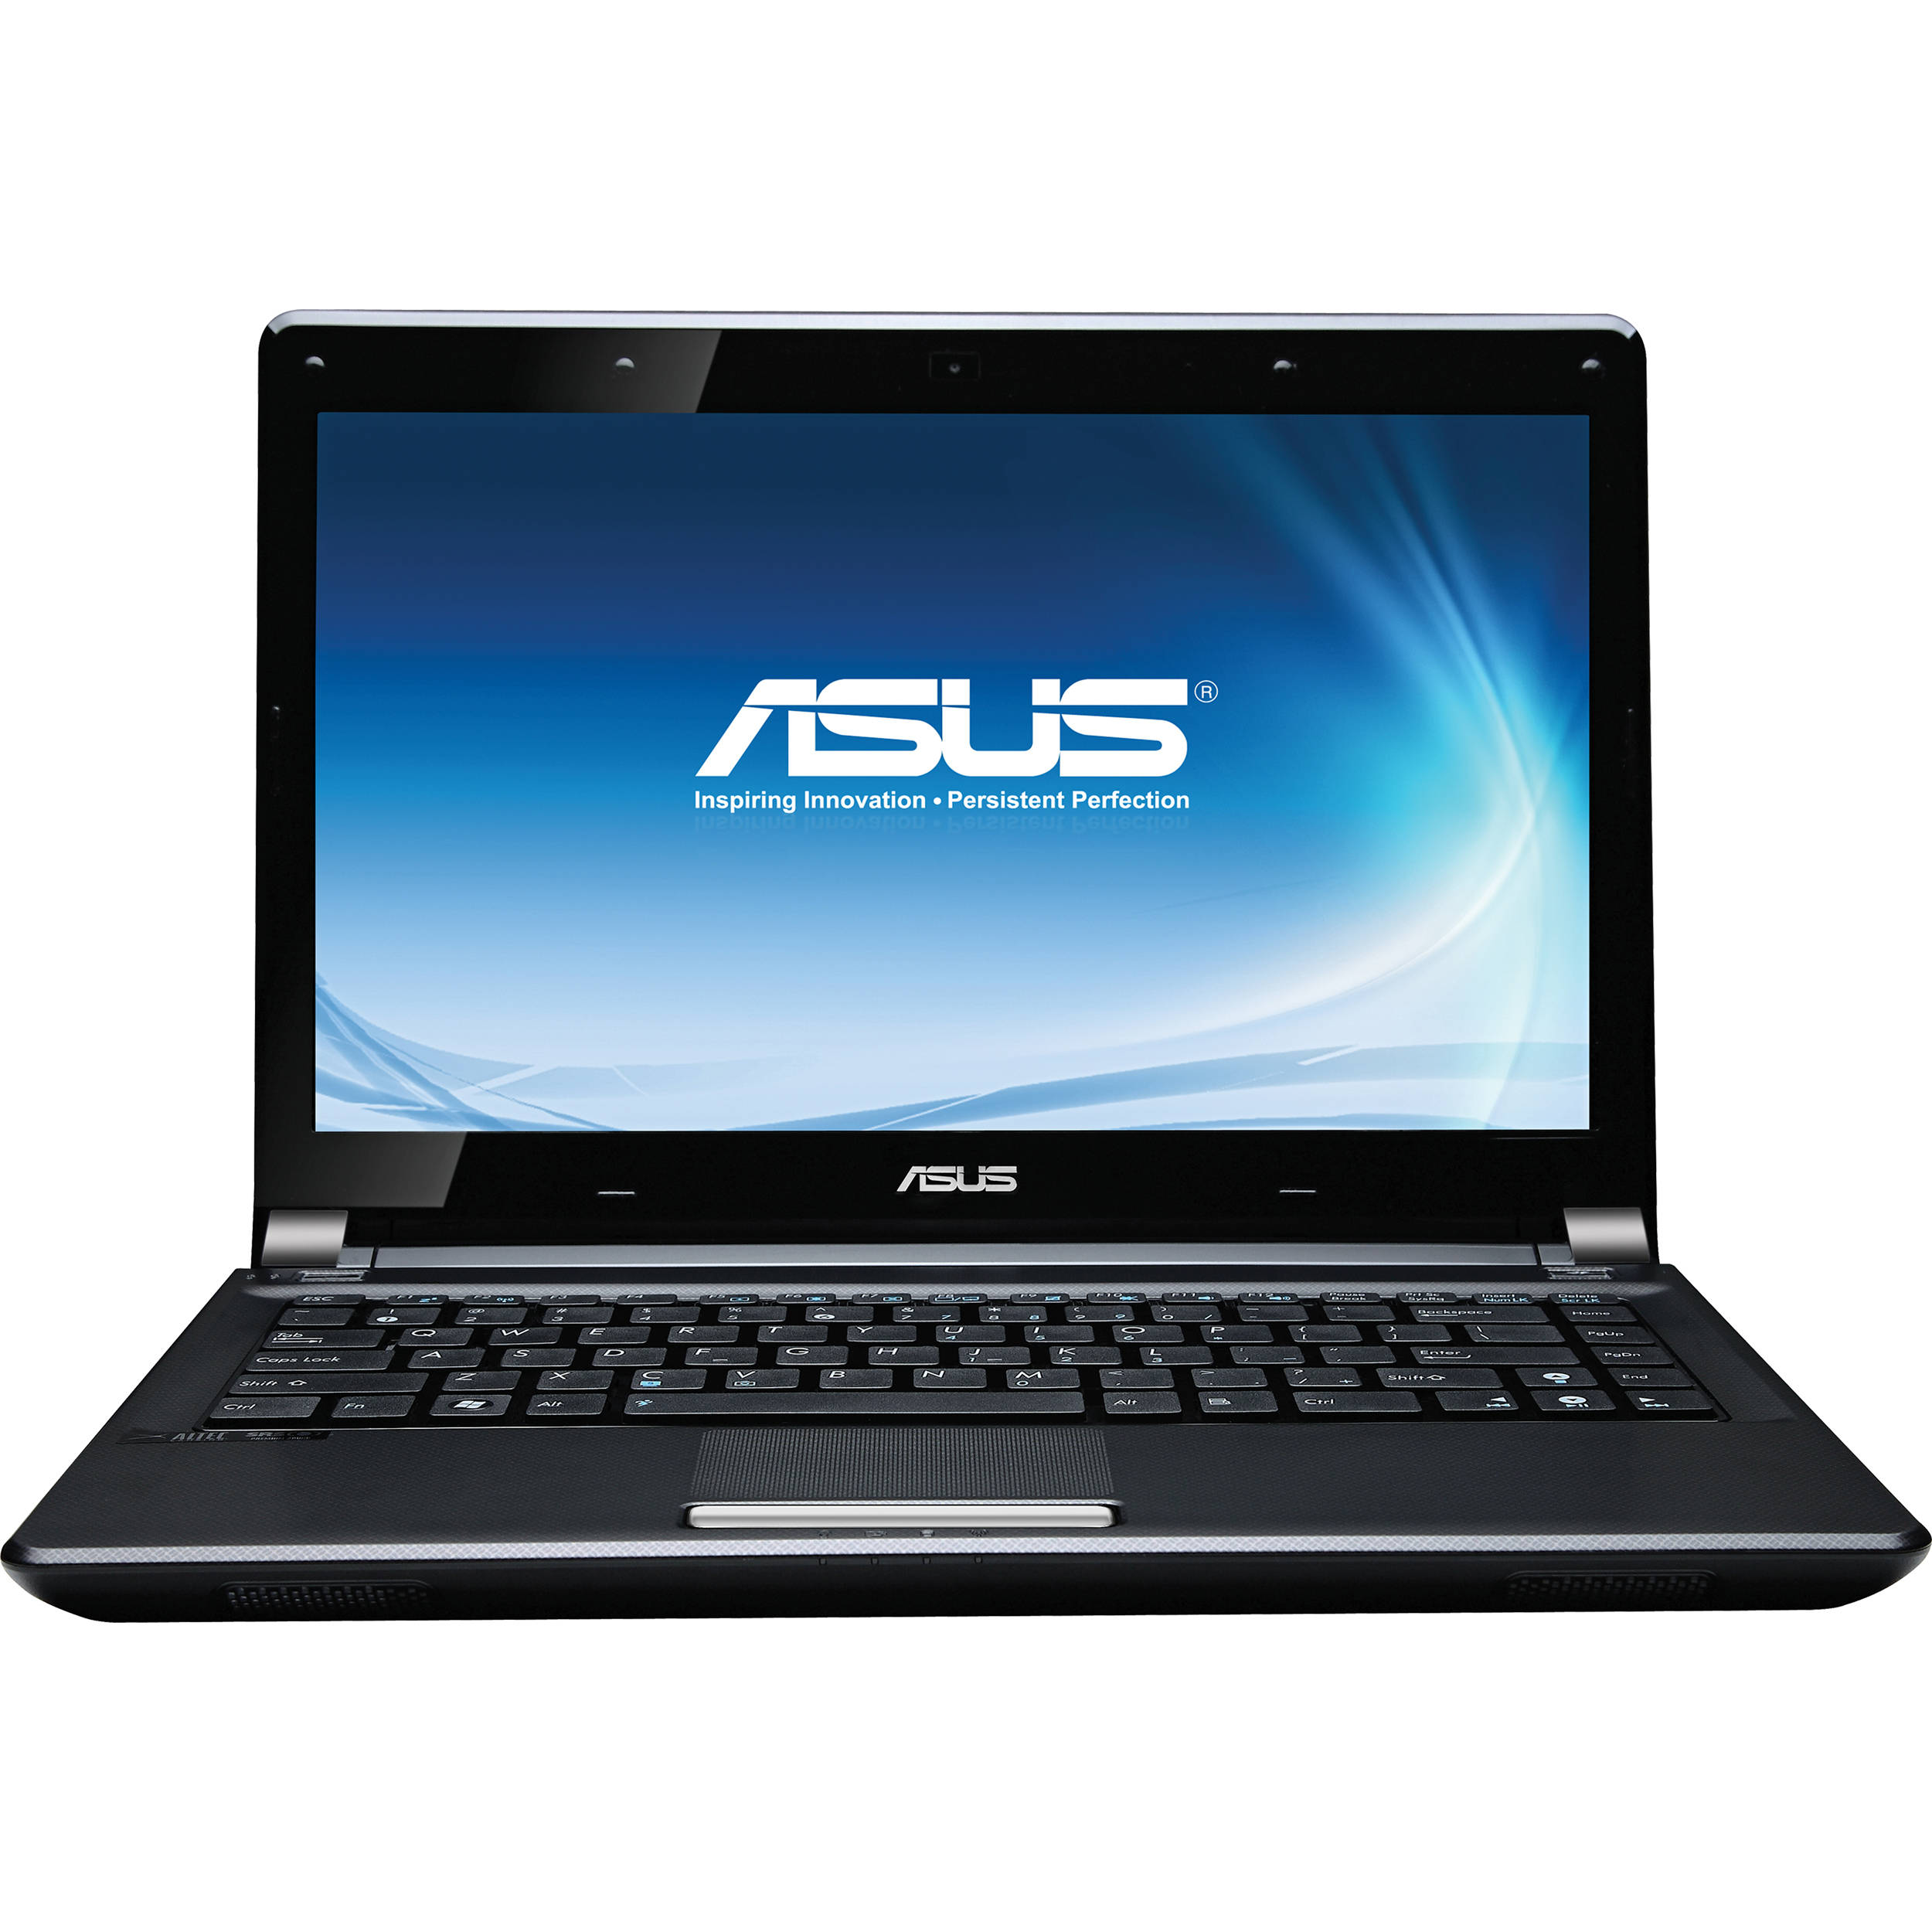 ASUS U45JC MANAGEMENT WINDOWS DRIVER